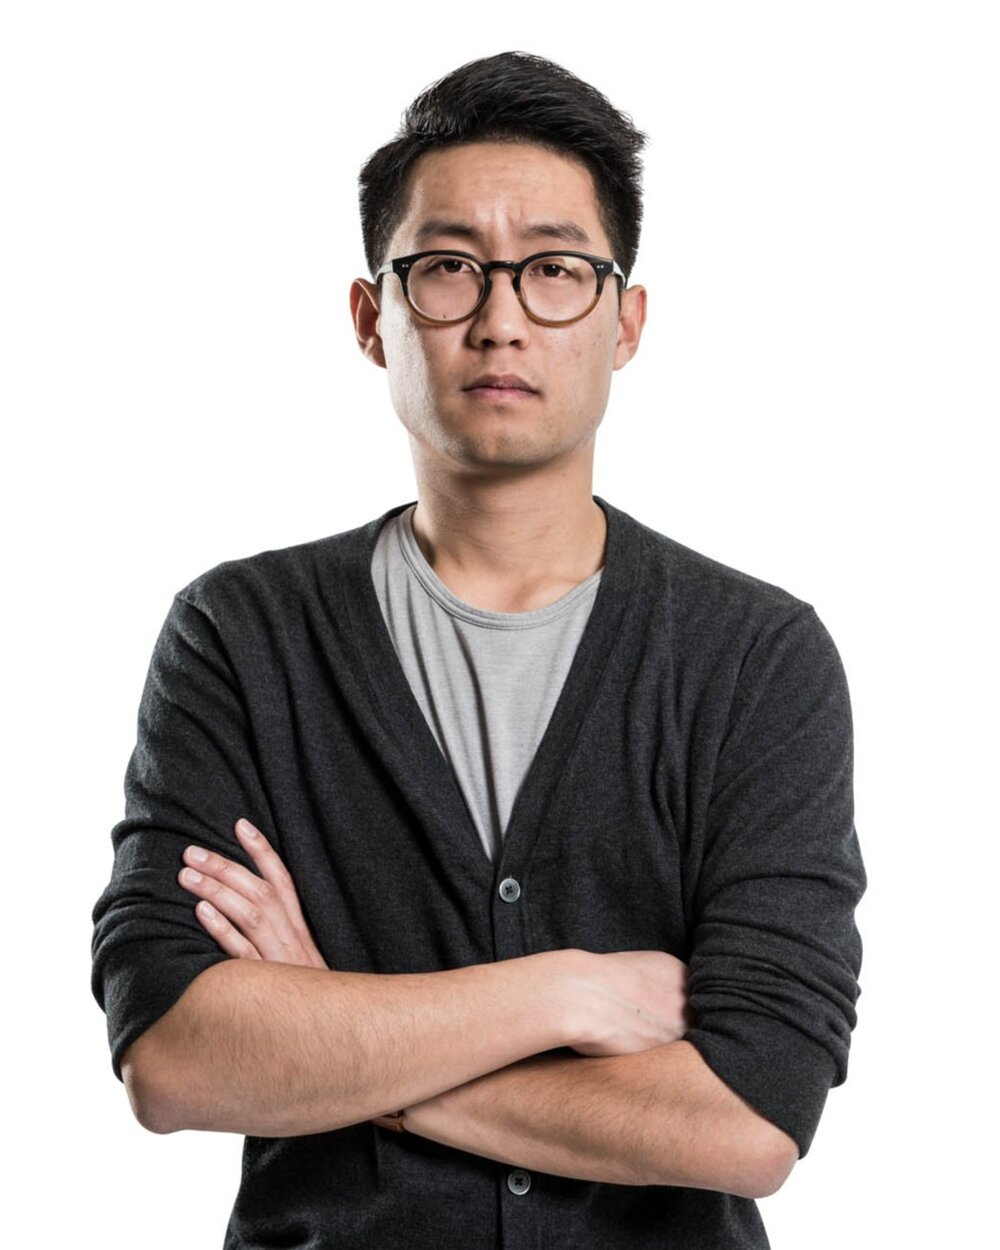 Young asian man with glasses crossing his arms